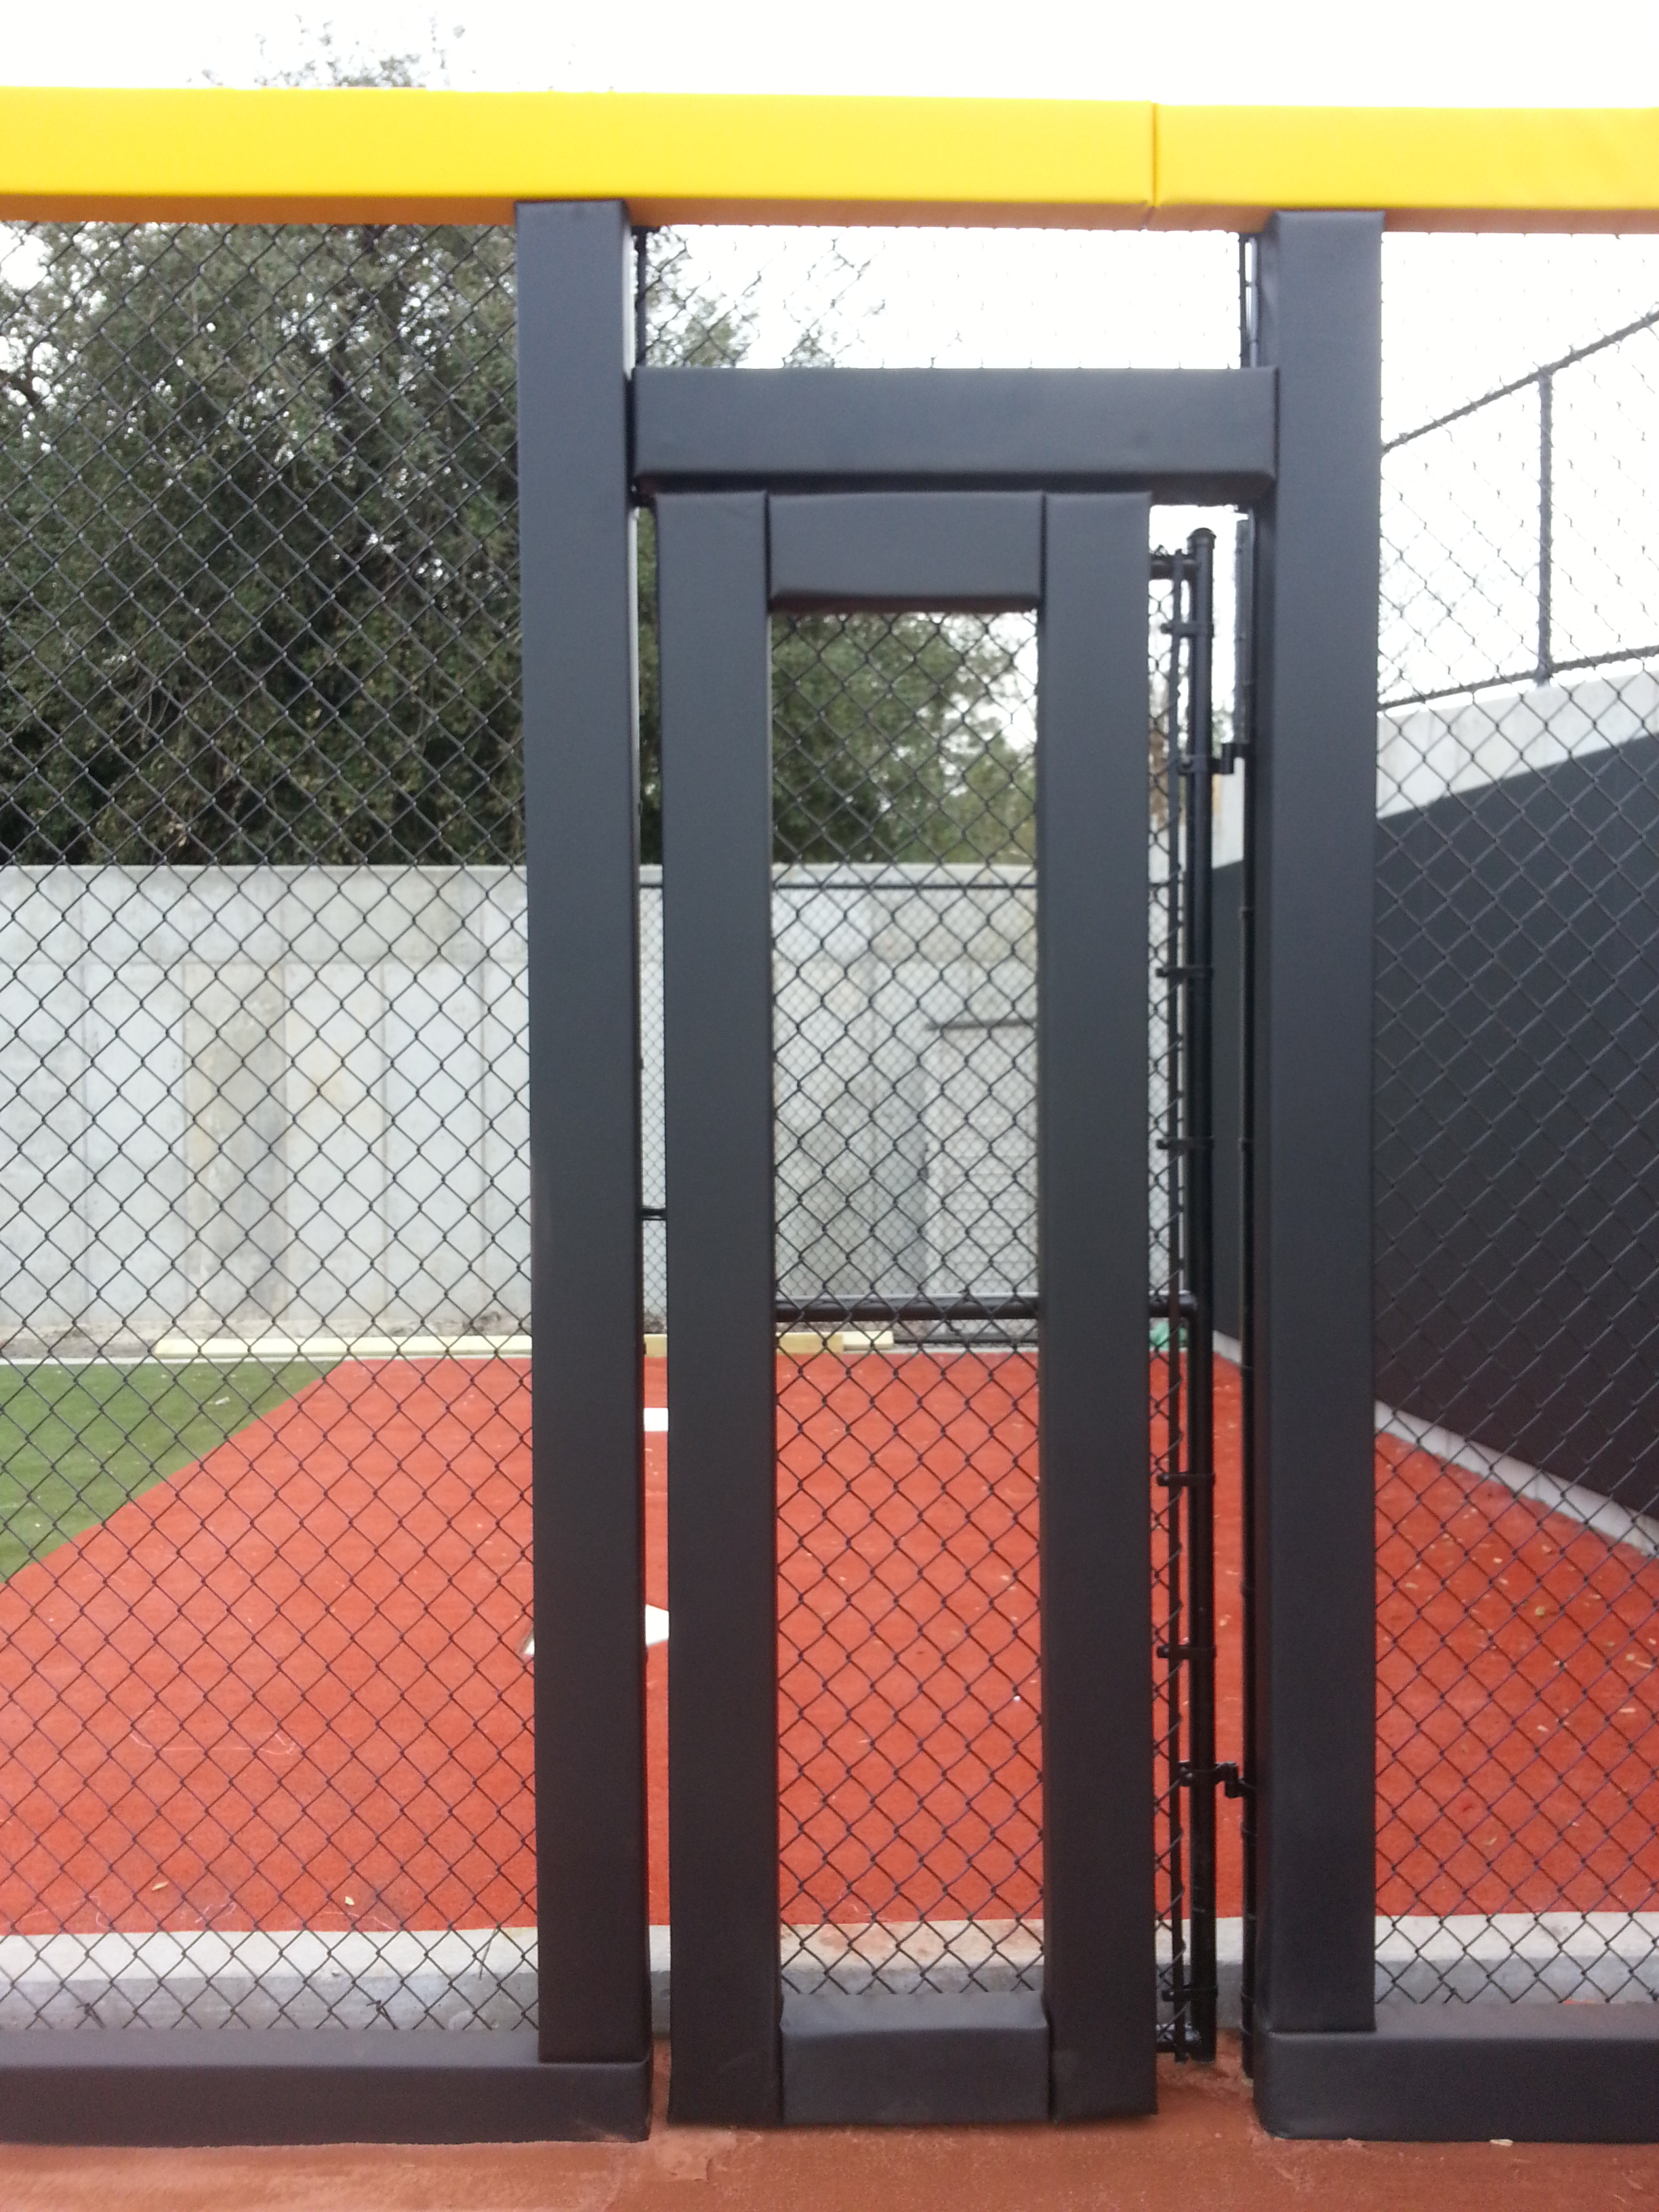 Baseball Fence Door Bullpen Padding